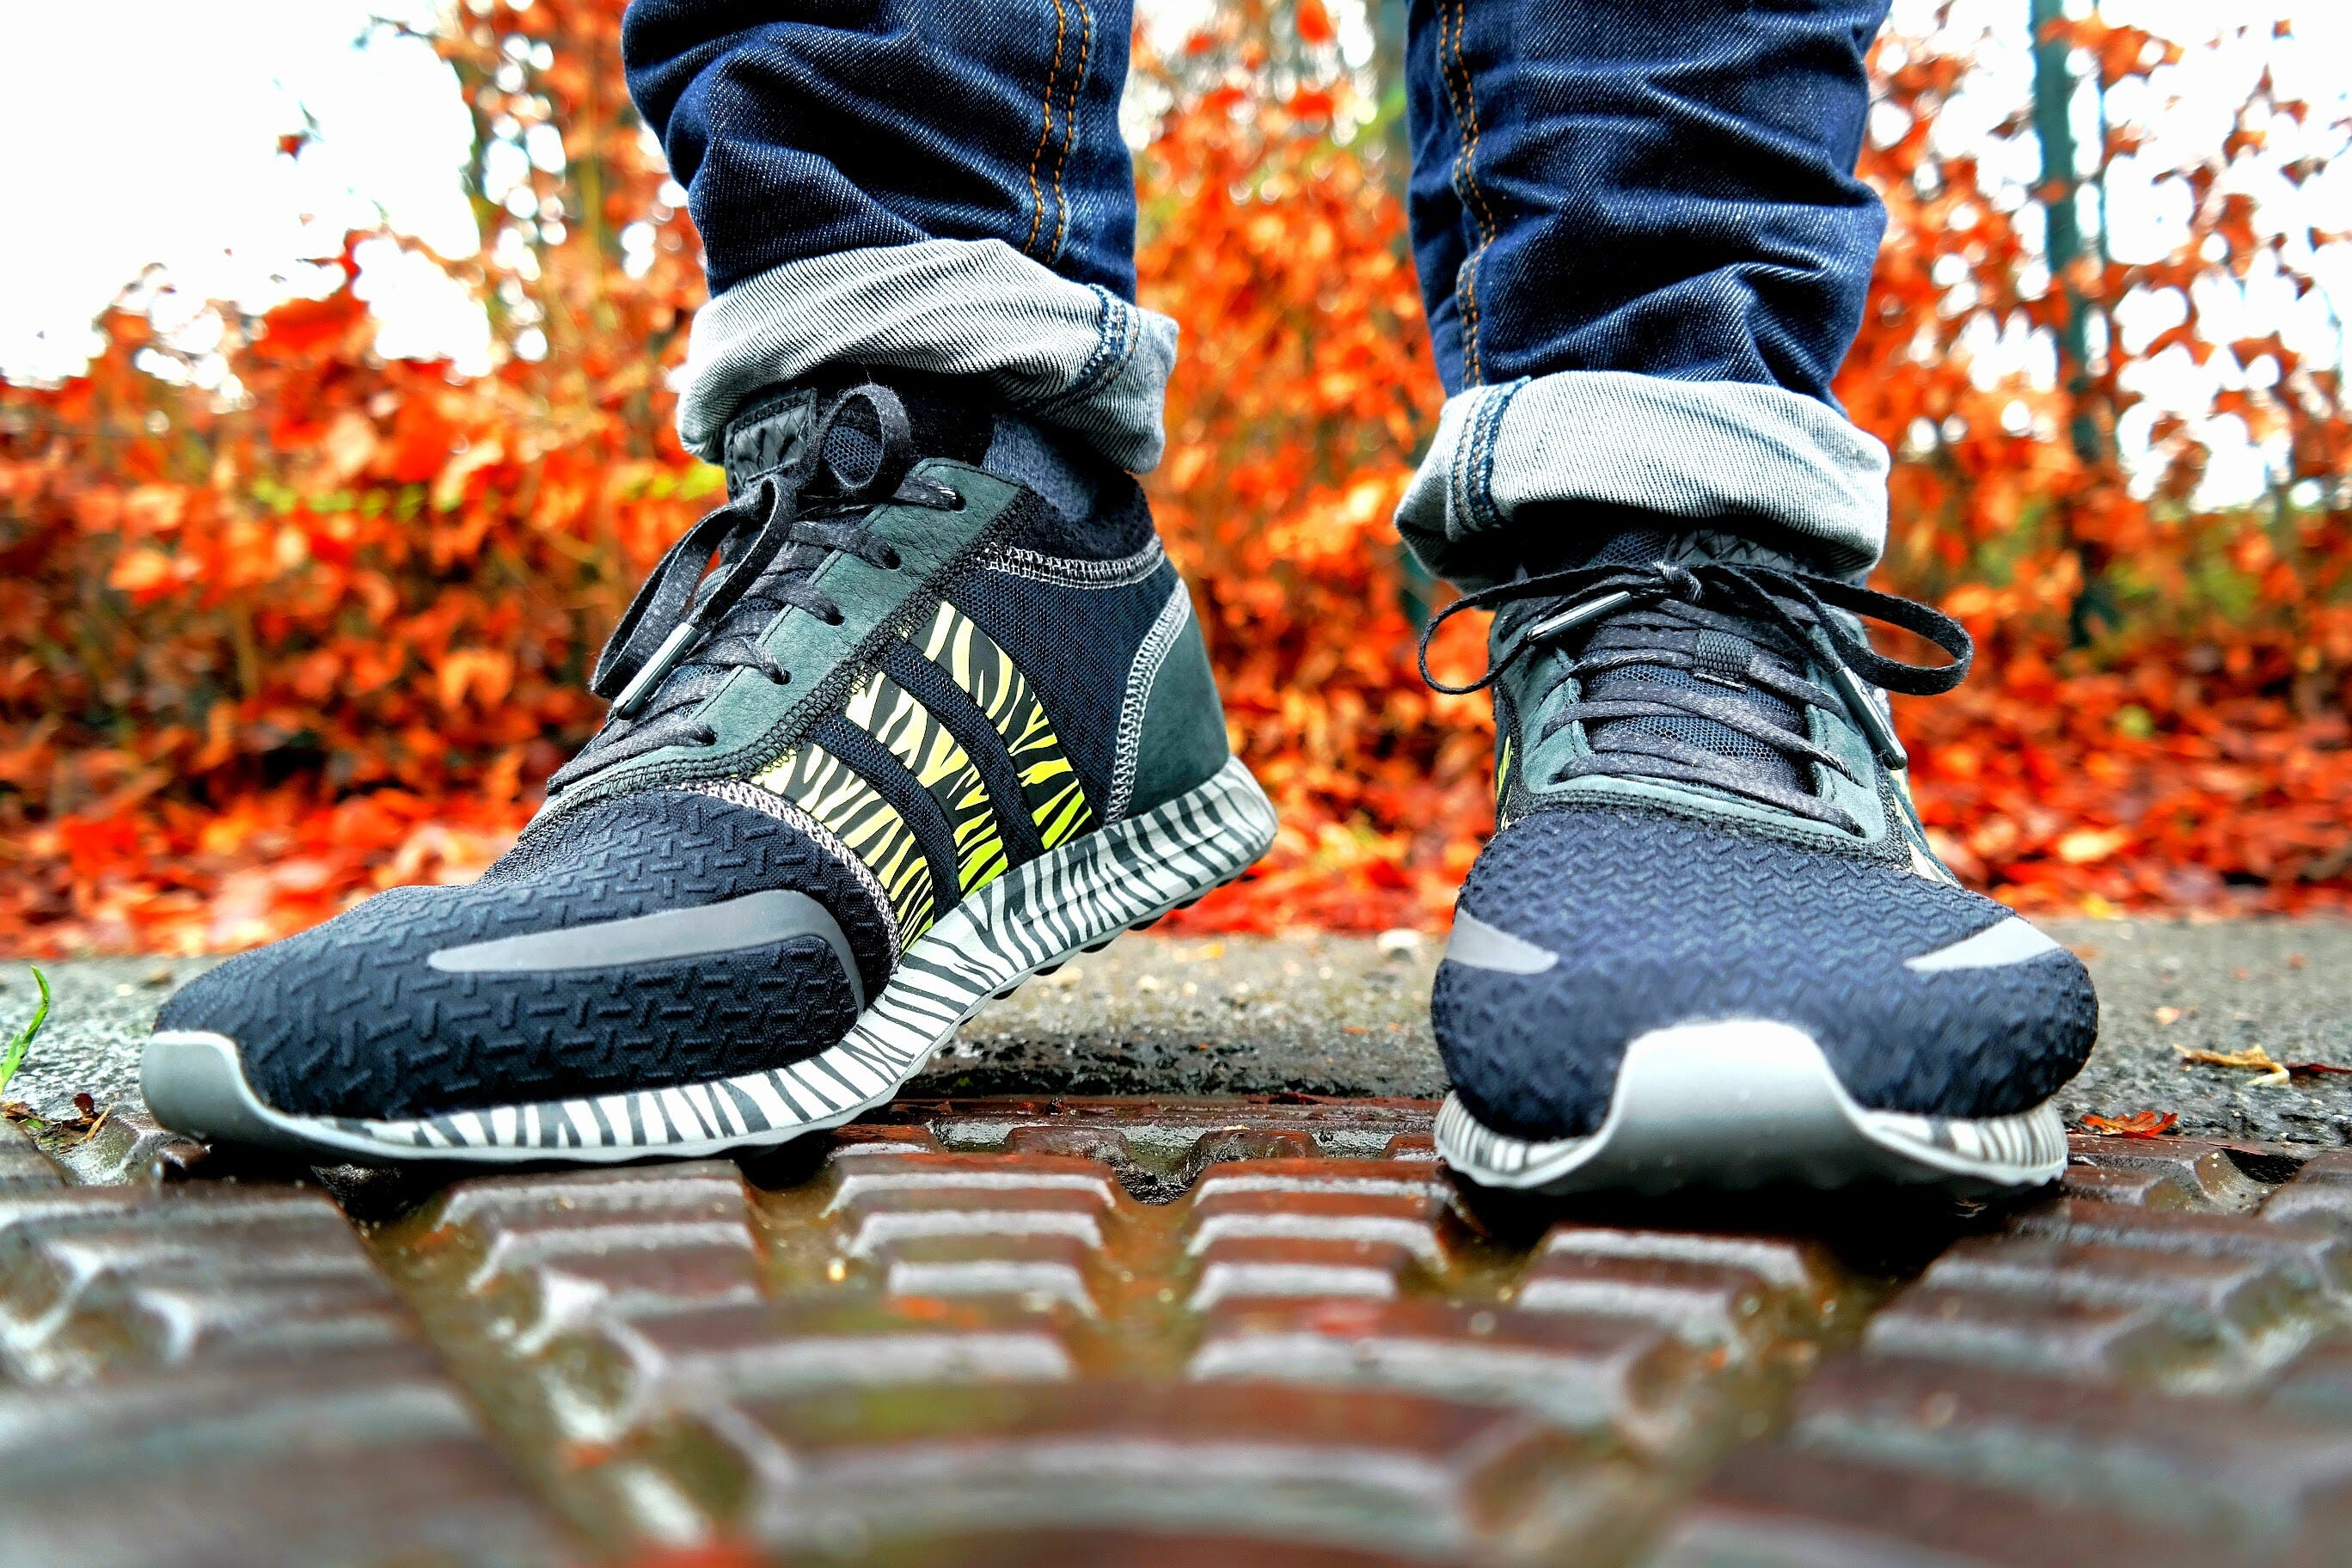 Shallow Focus Photography of Pair of Black Black-and-white Adidas Running Shoes